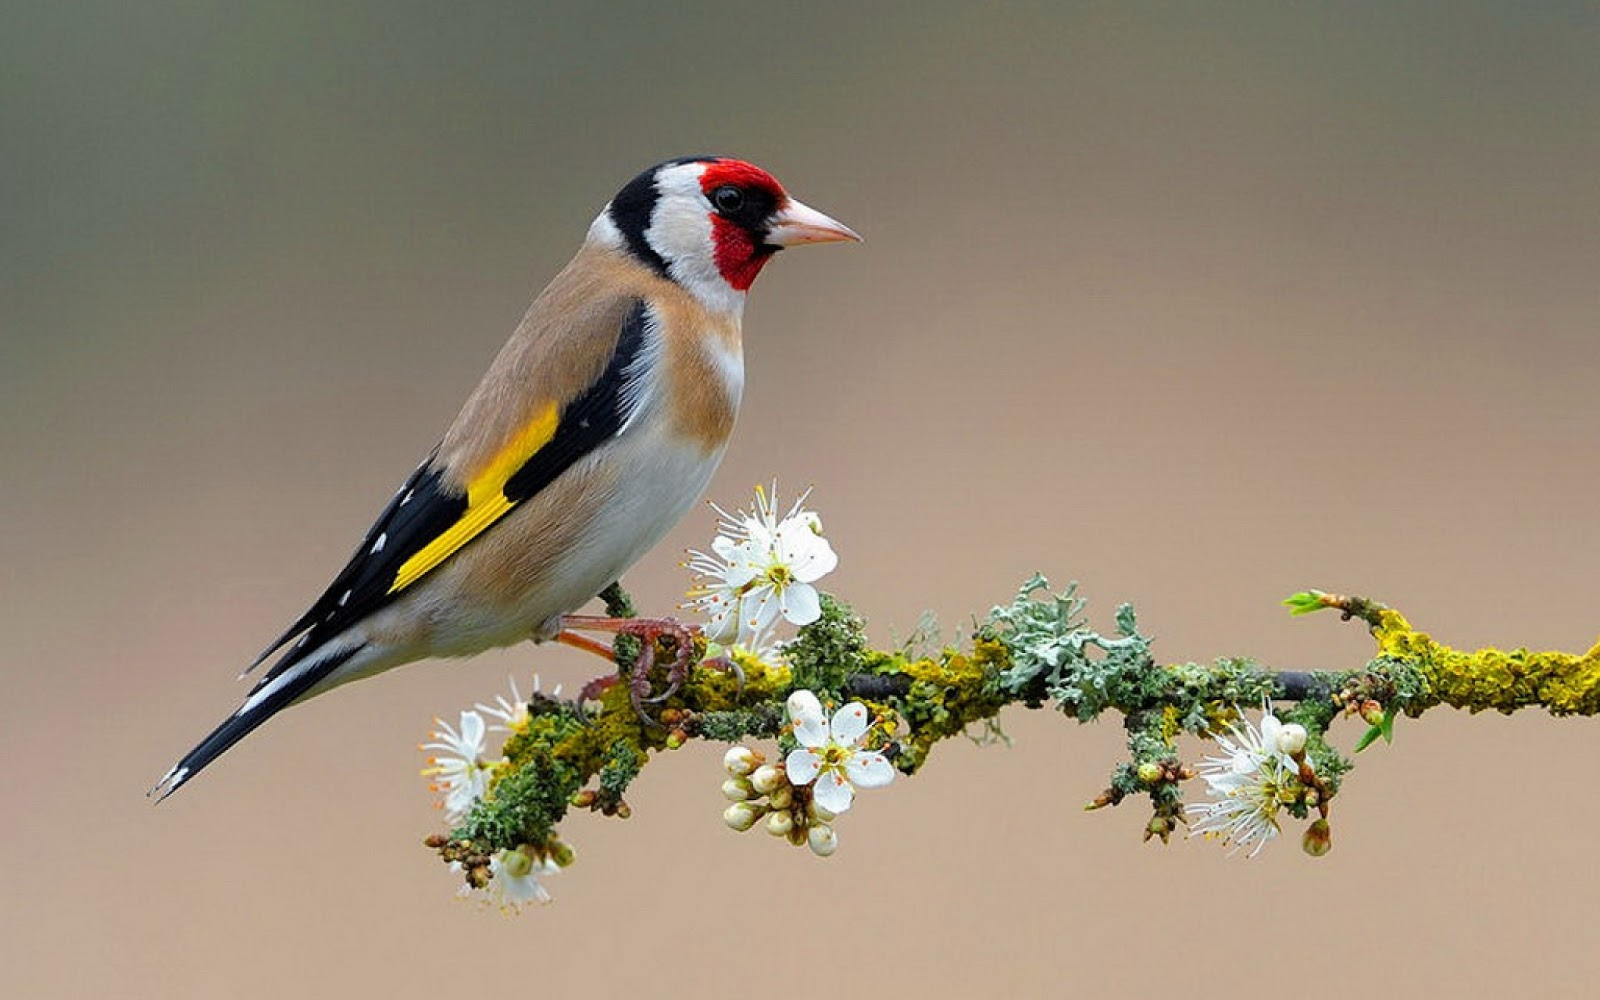 flowers for flower lovers Flowers and birds desktop wallpapers 1600x1000